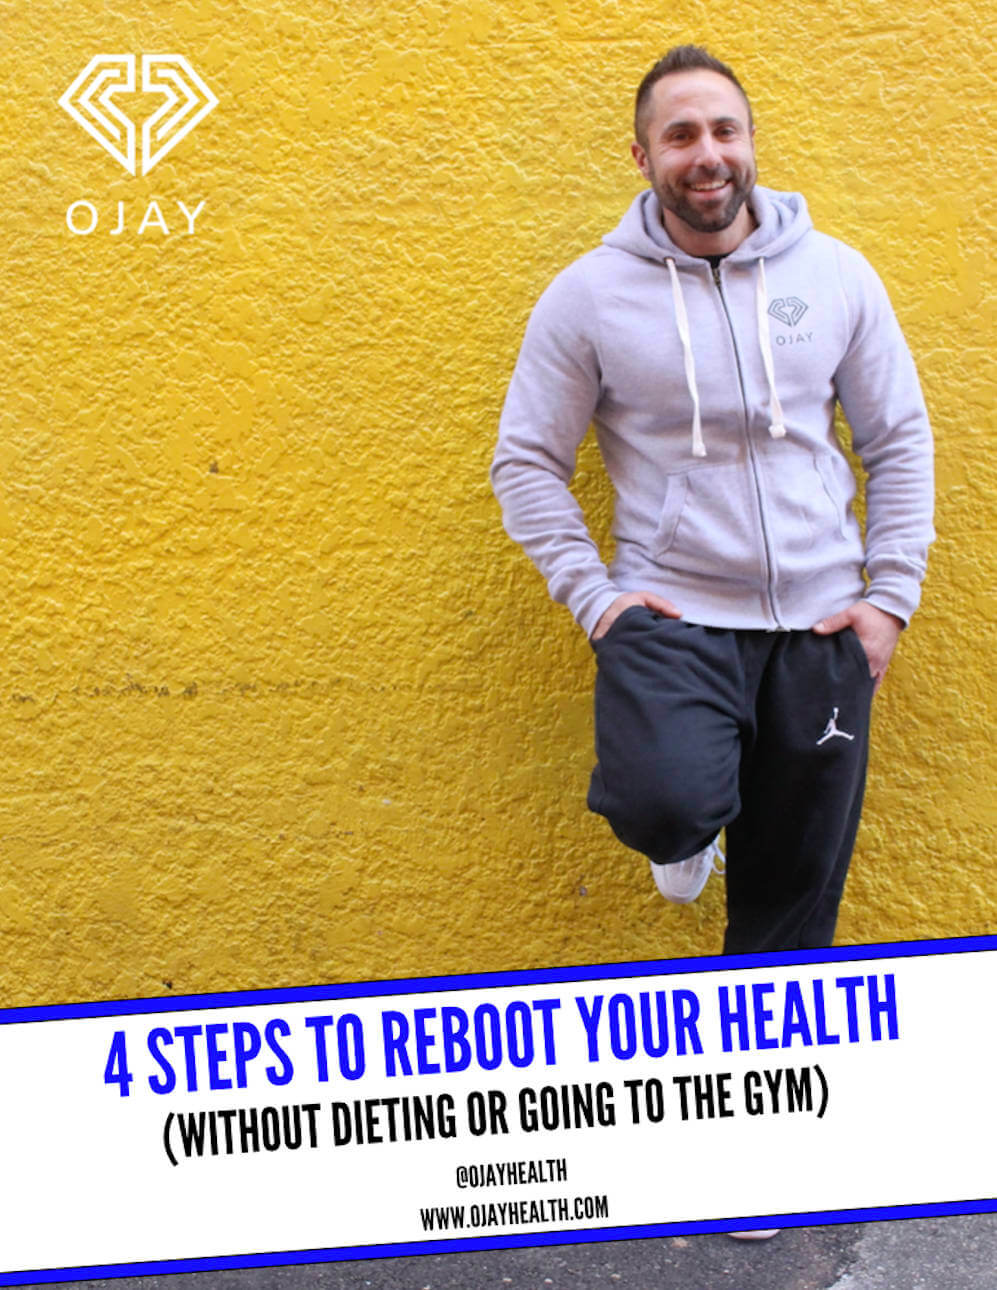 4 Steps To Reboot Your Health